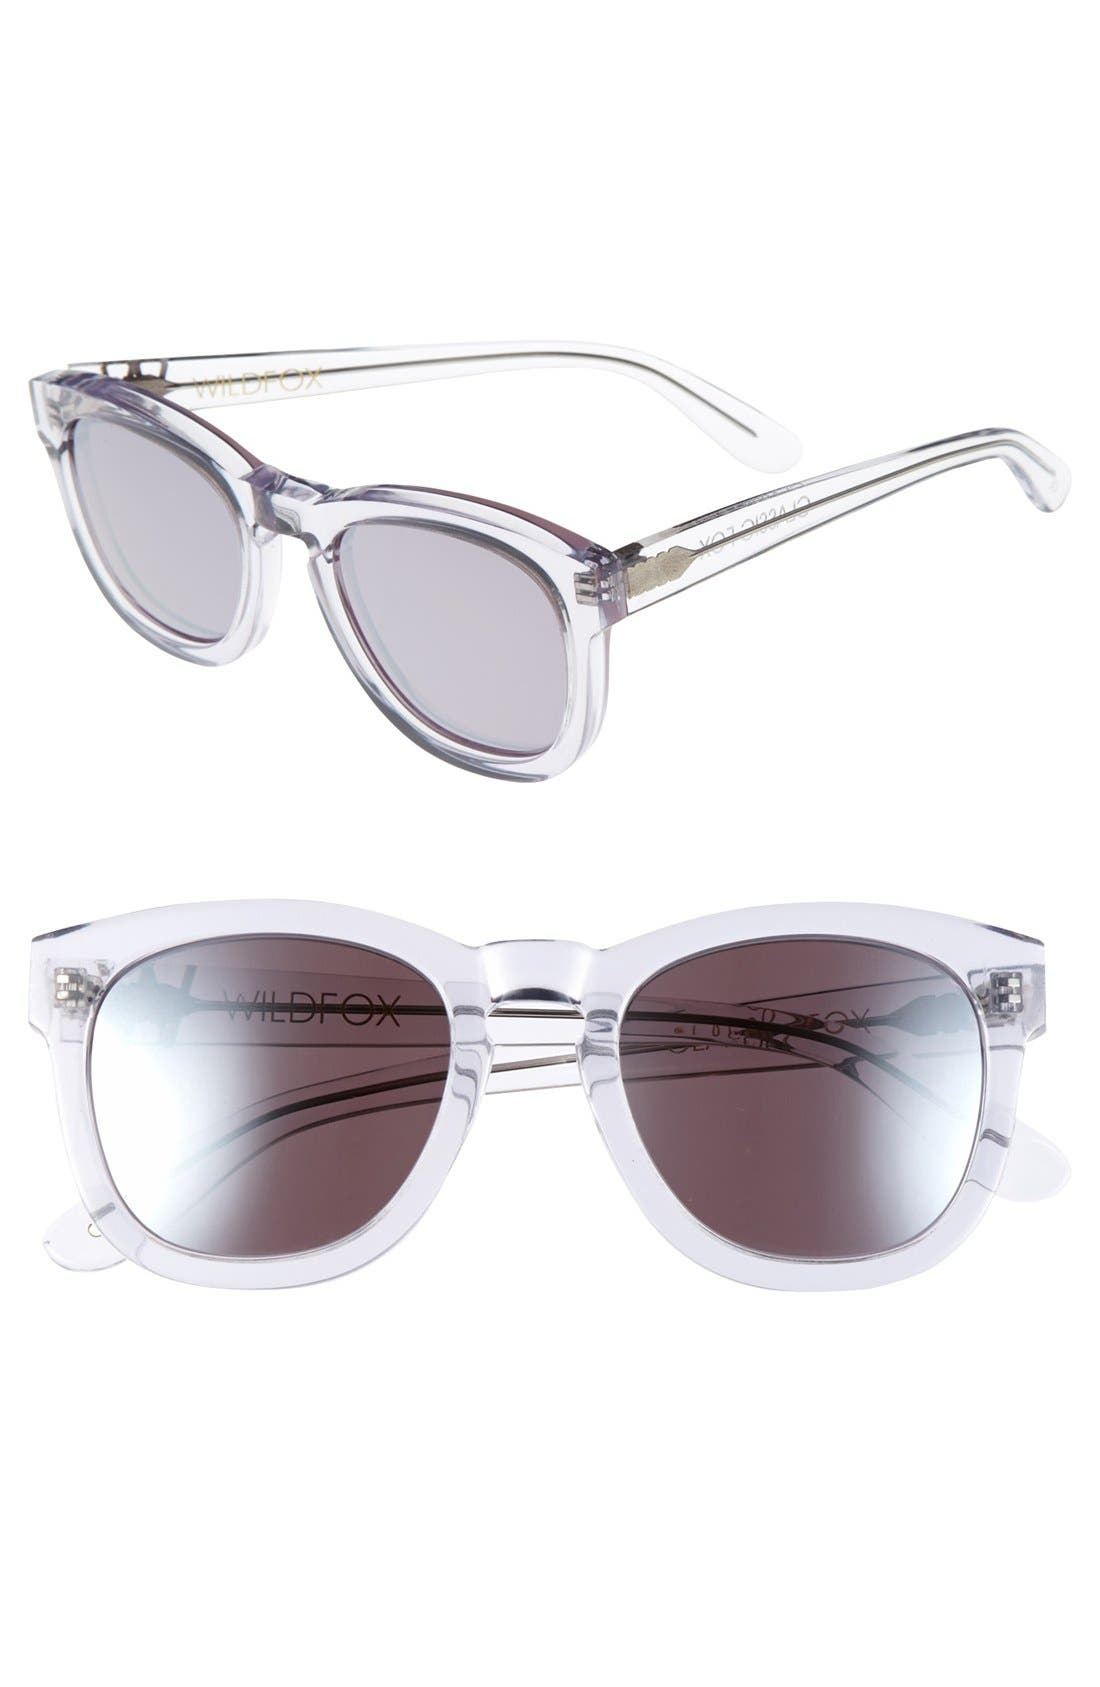 Classic Fox - Deluxe 59mm Sunglasses,                             Main thumbnail 1, color,                             Crystal